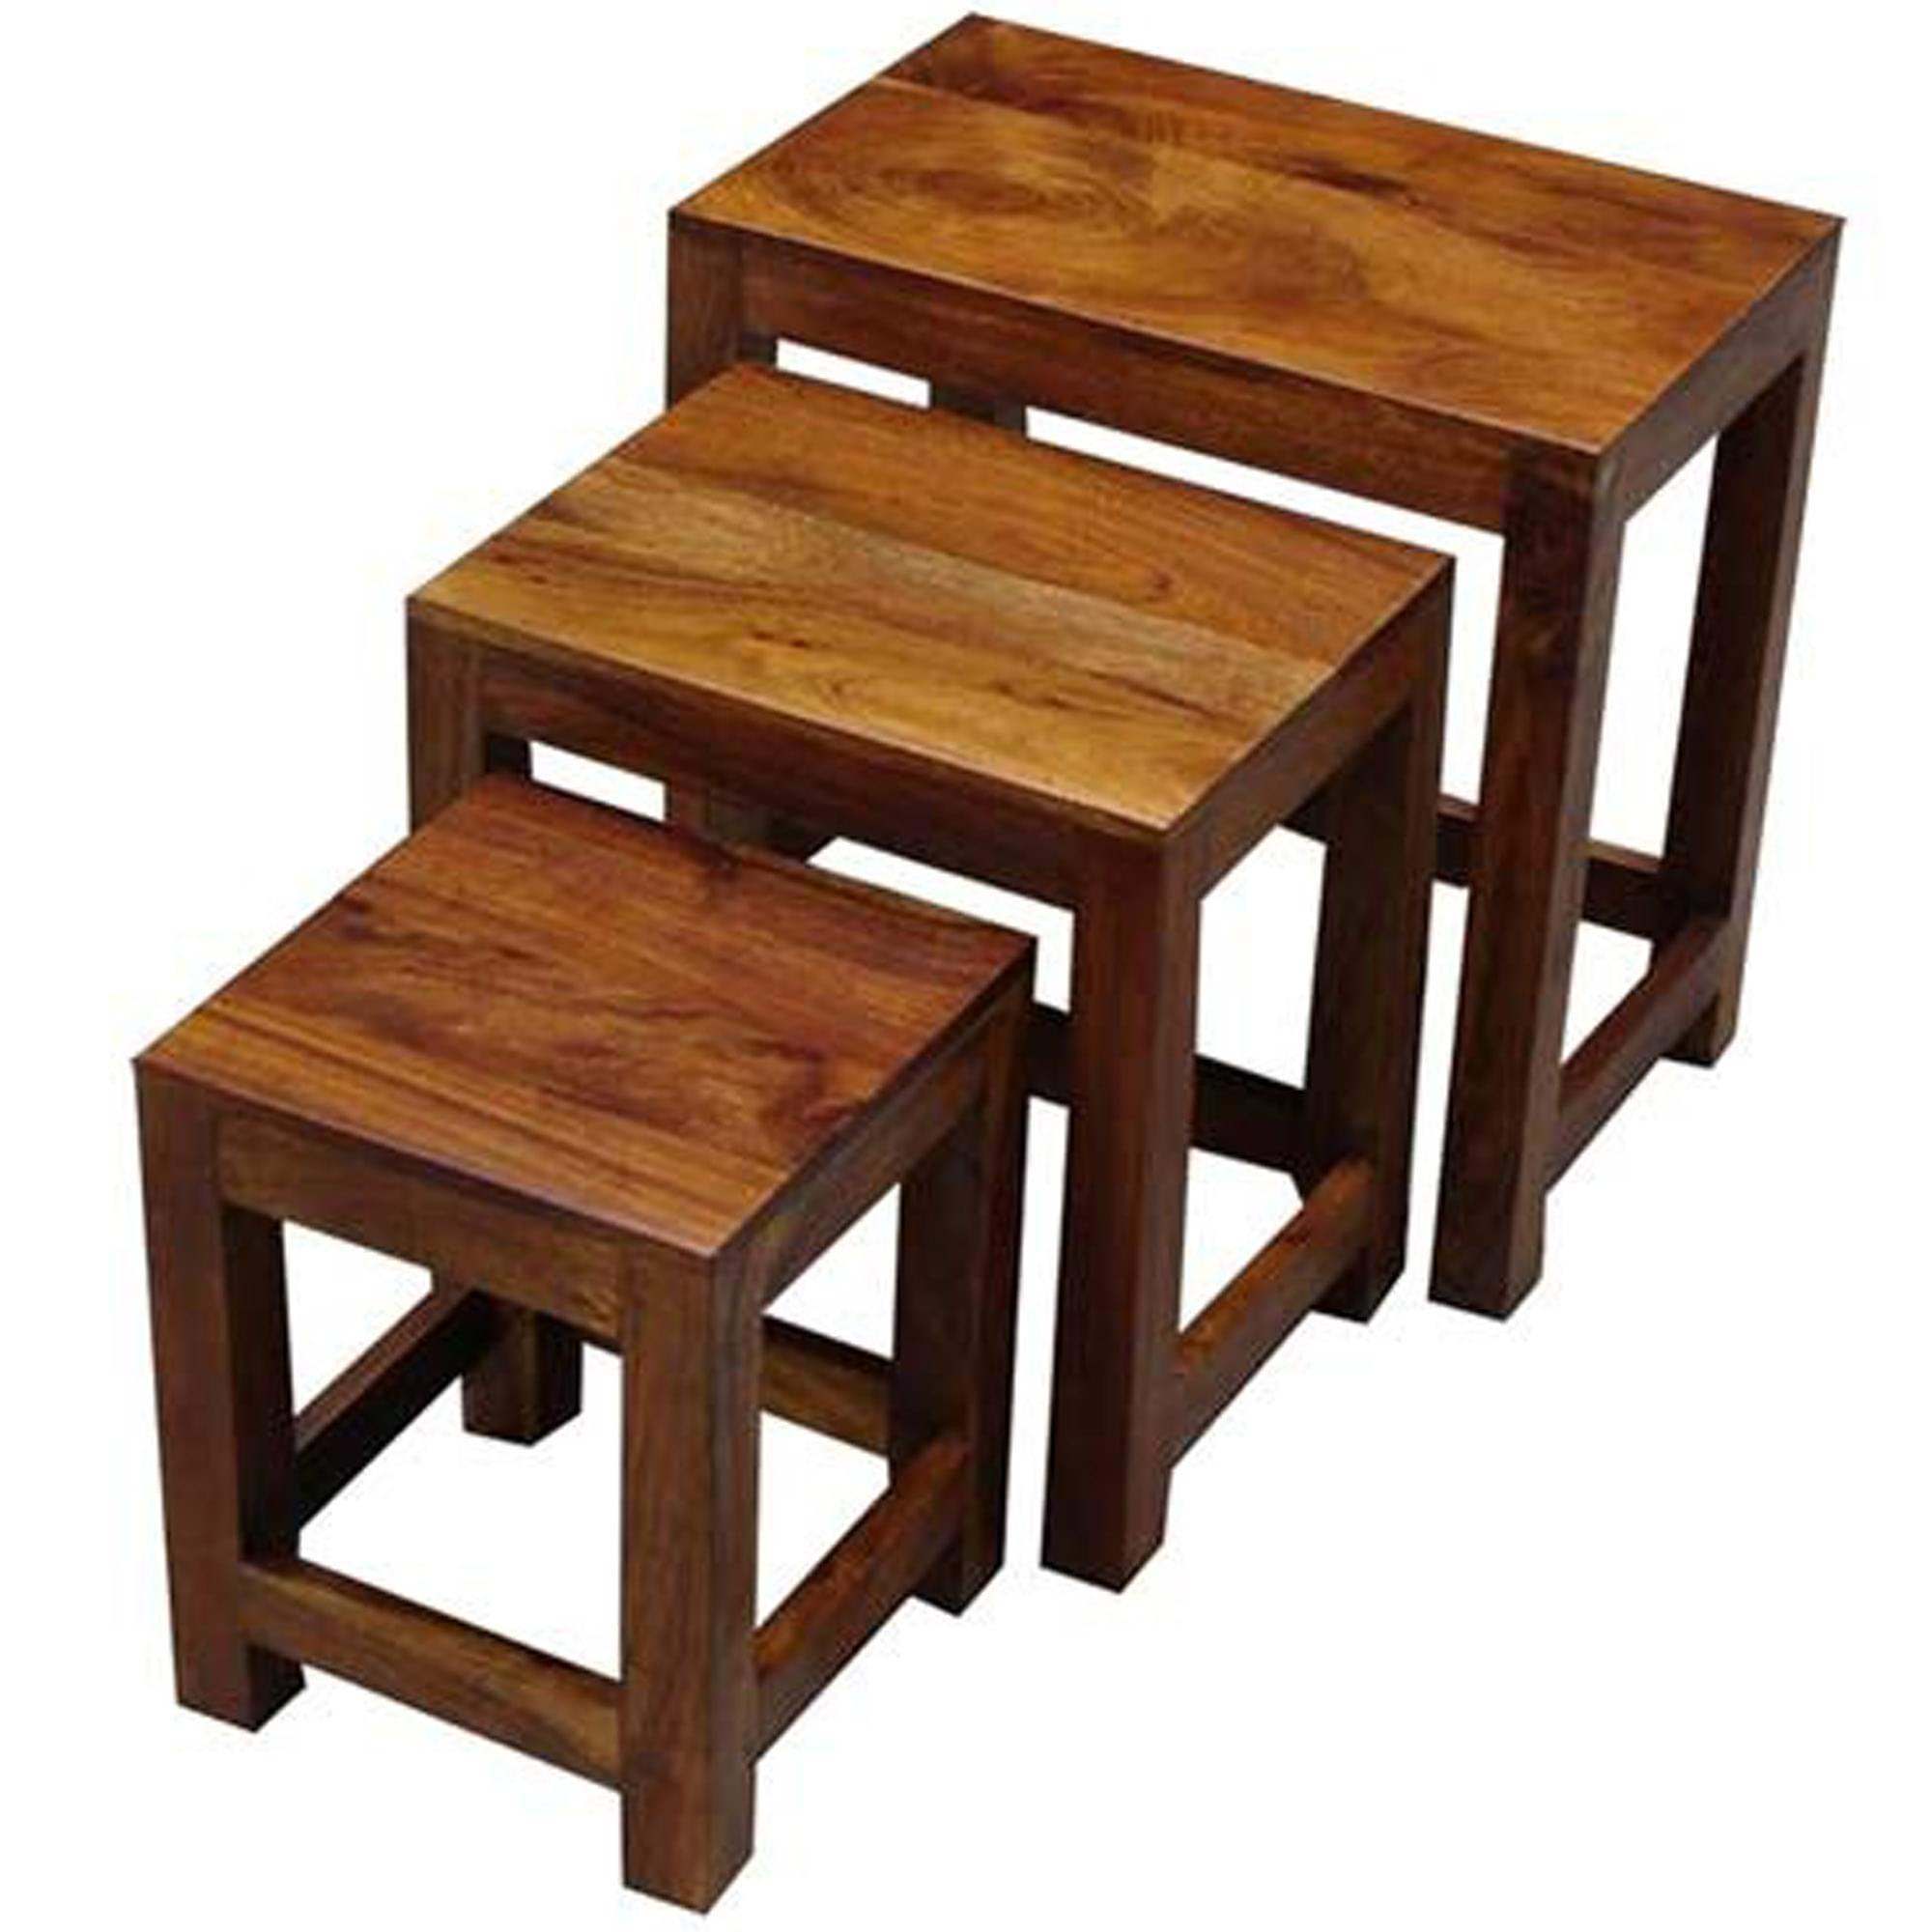 Acacia Wood Nest Of Small Tables Natural Wood Side Tables Hd365